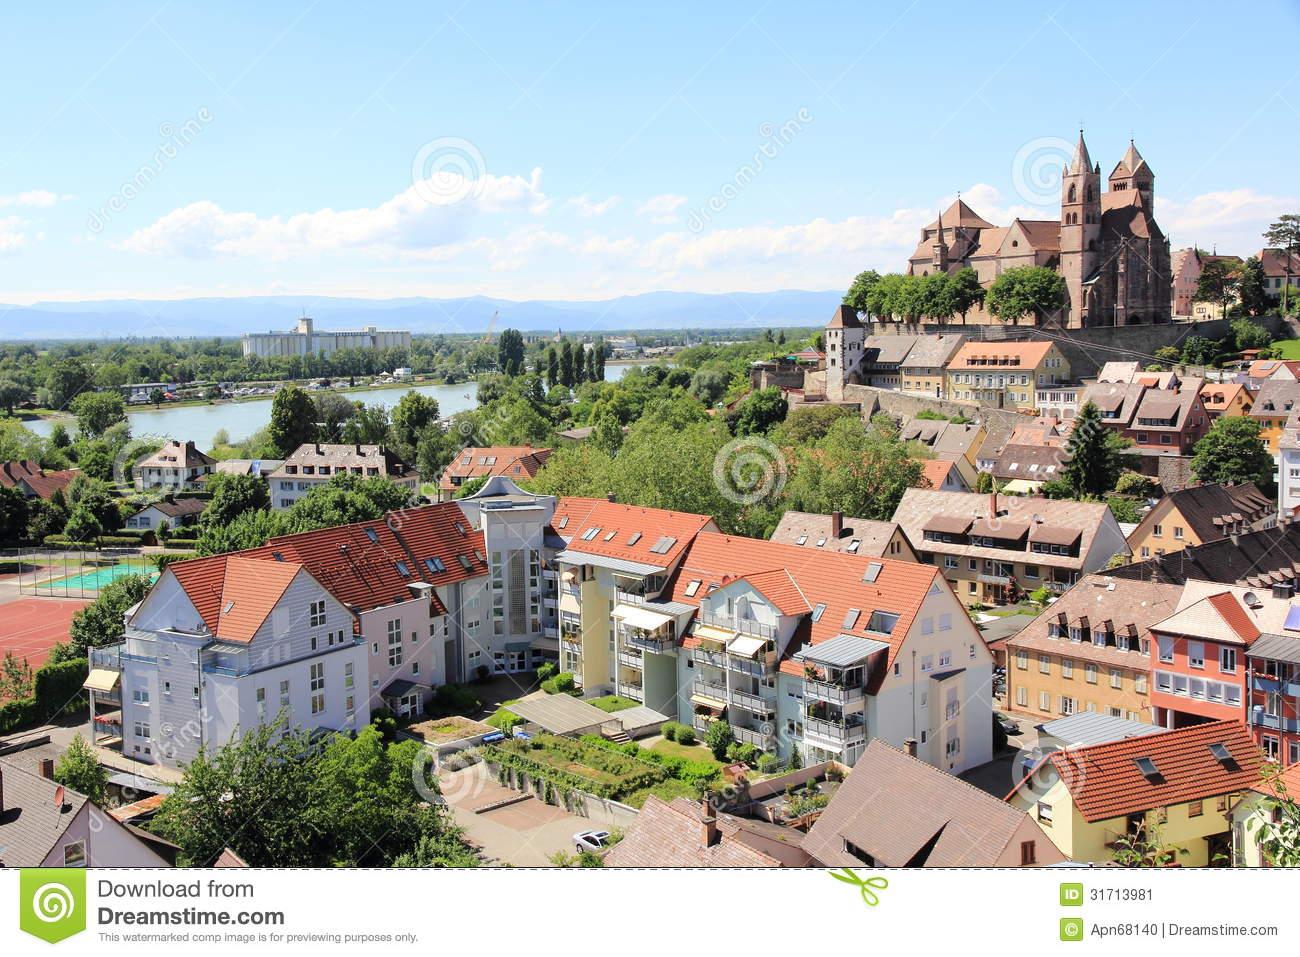 The City Of Breisach In Germany Stock Image.